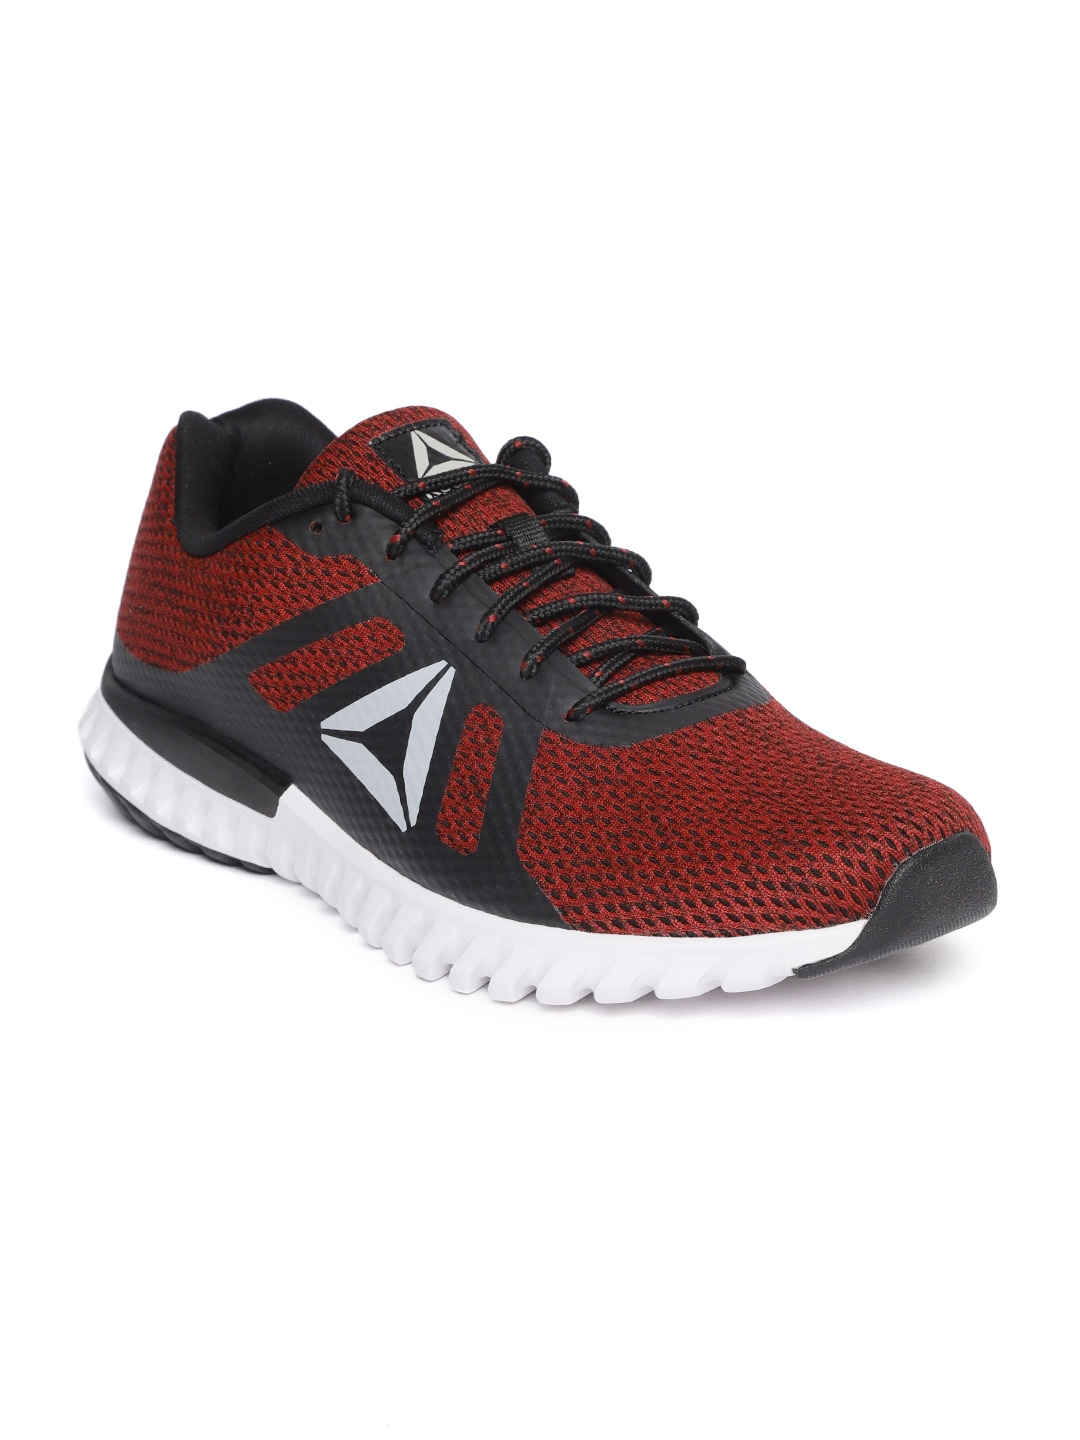 5f146851849 Reebok Shoes - Buy Reebok Shoes For Men   Women Online